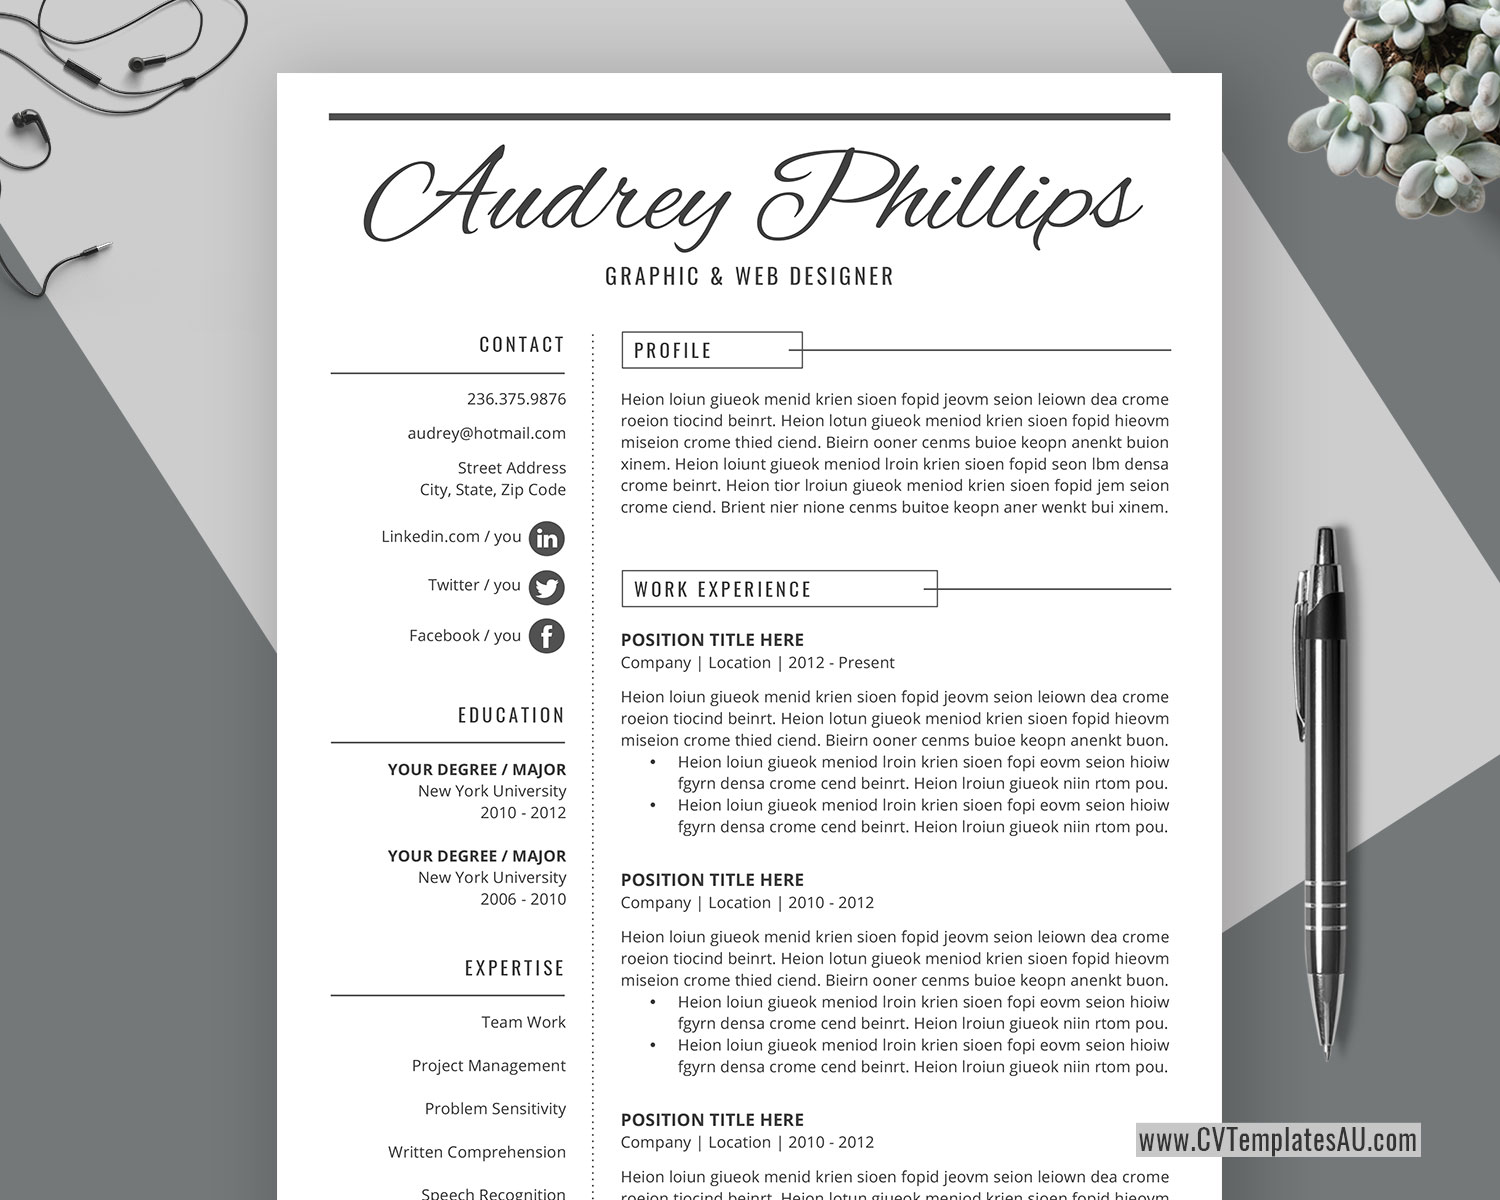 Simple CV Template for Microsoft Word, Cover Letter, Curriculum Vitae, Modern and Creative ...